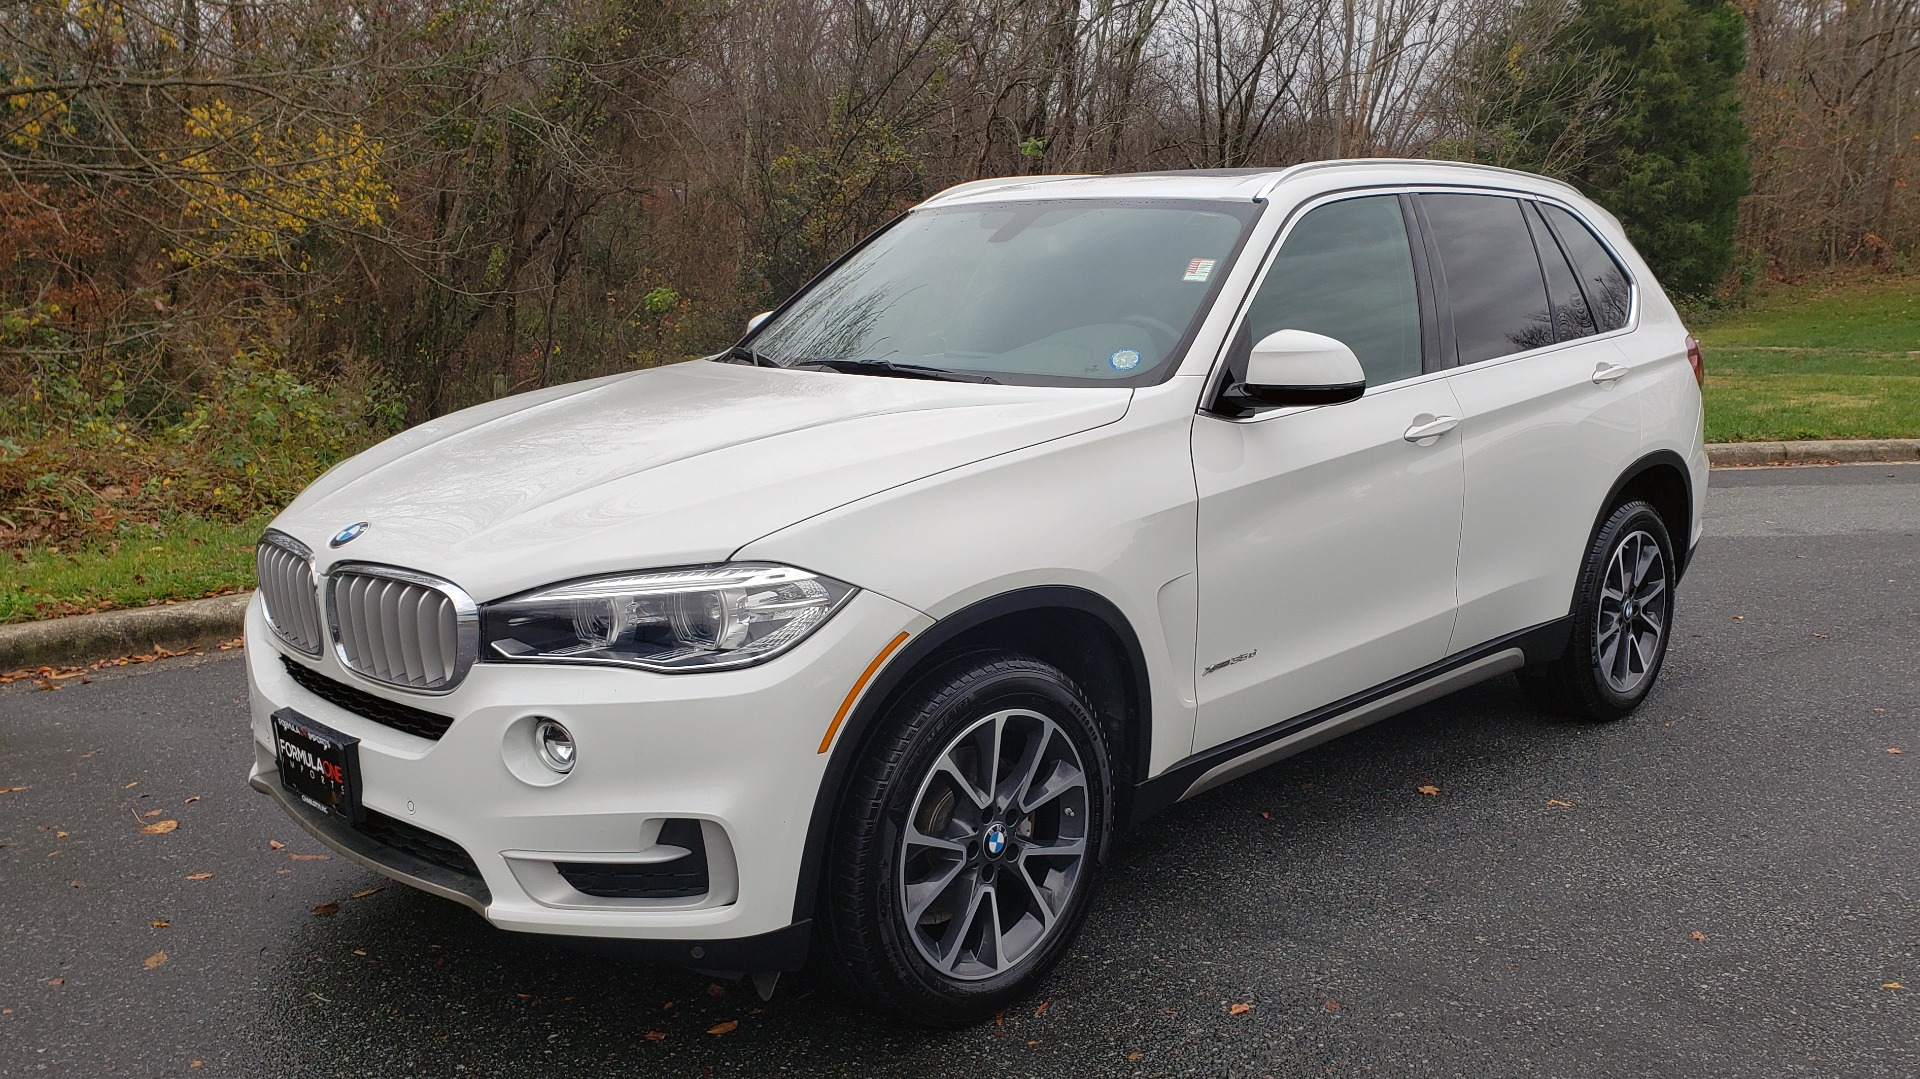 Used 2017 BMW X5 XDRIVE35D / AWD / NAV / DIESEL / SUNROOF / REARVIEW for sale $34,595 at Formula Imports in Charlotte NC 28227 1